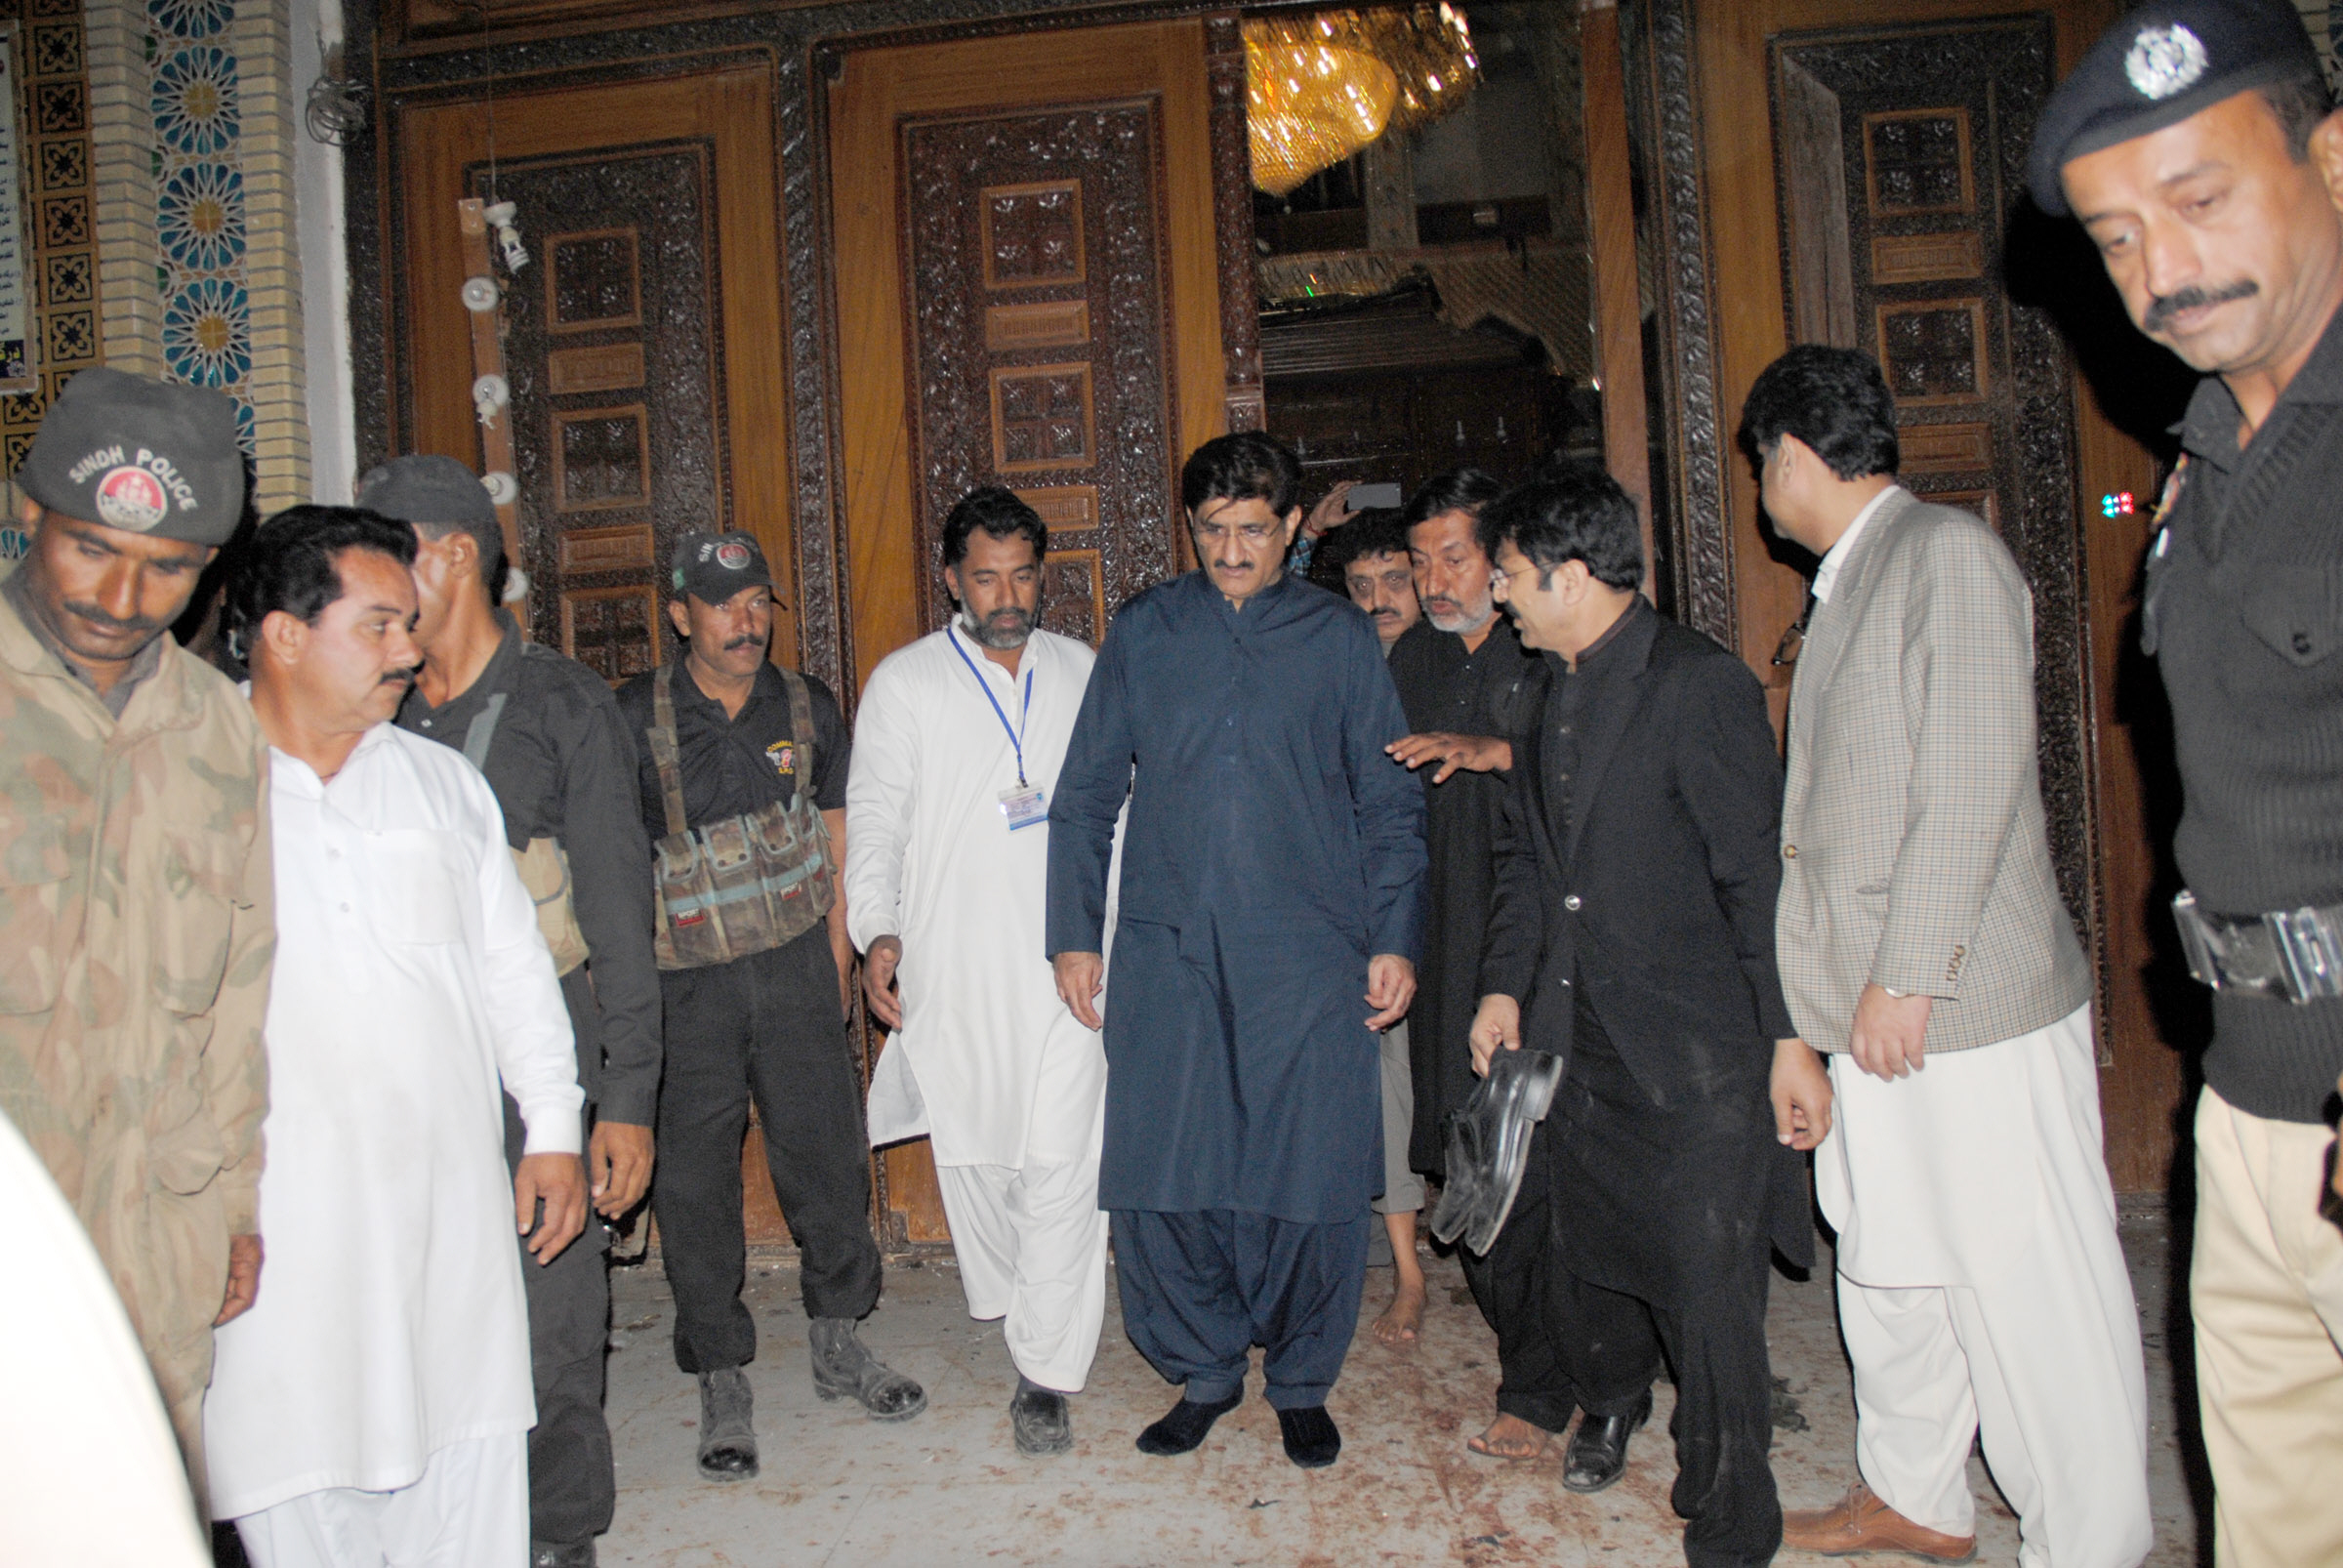 murad ali shah cautioned police to quot be alert active and efficient quot and that quot negligence will not be tolerated quot photo shahid ali express